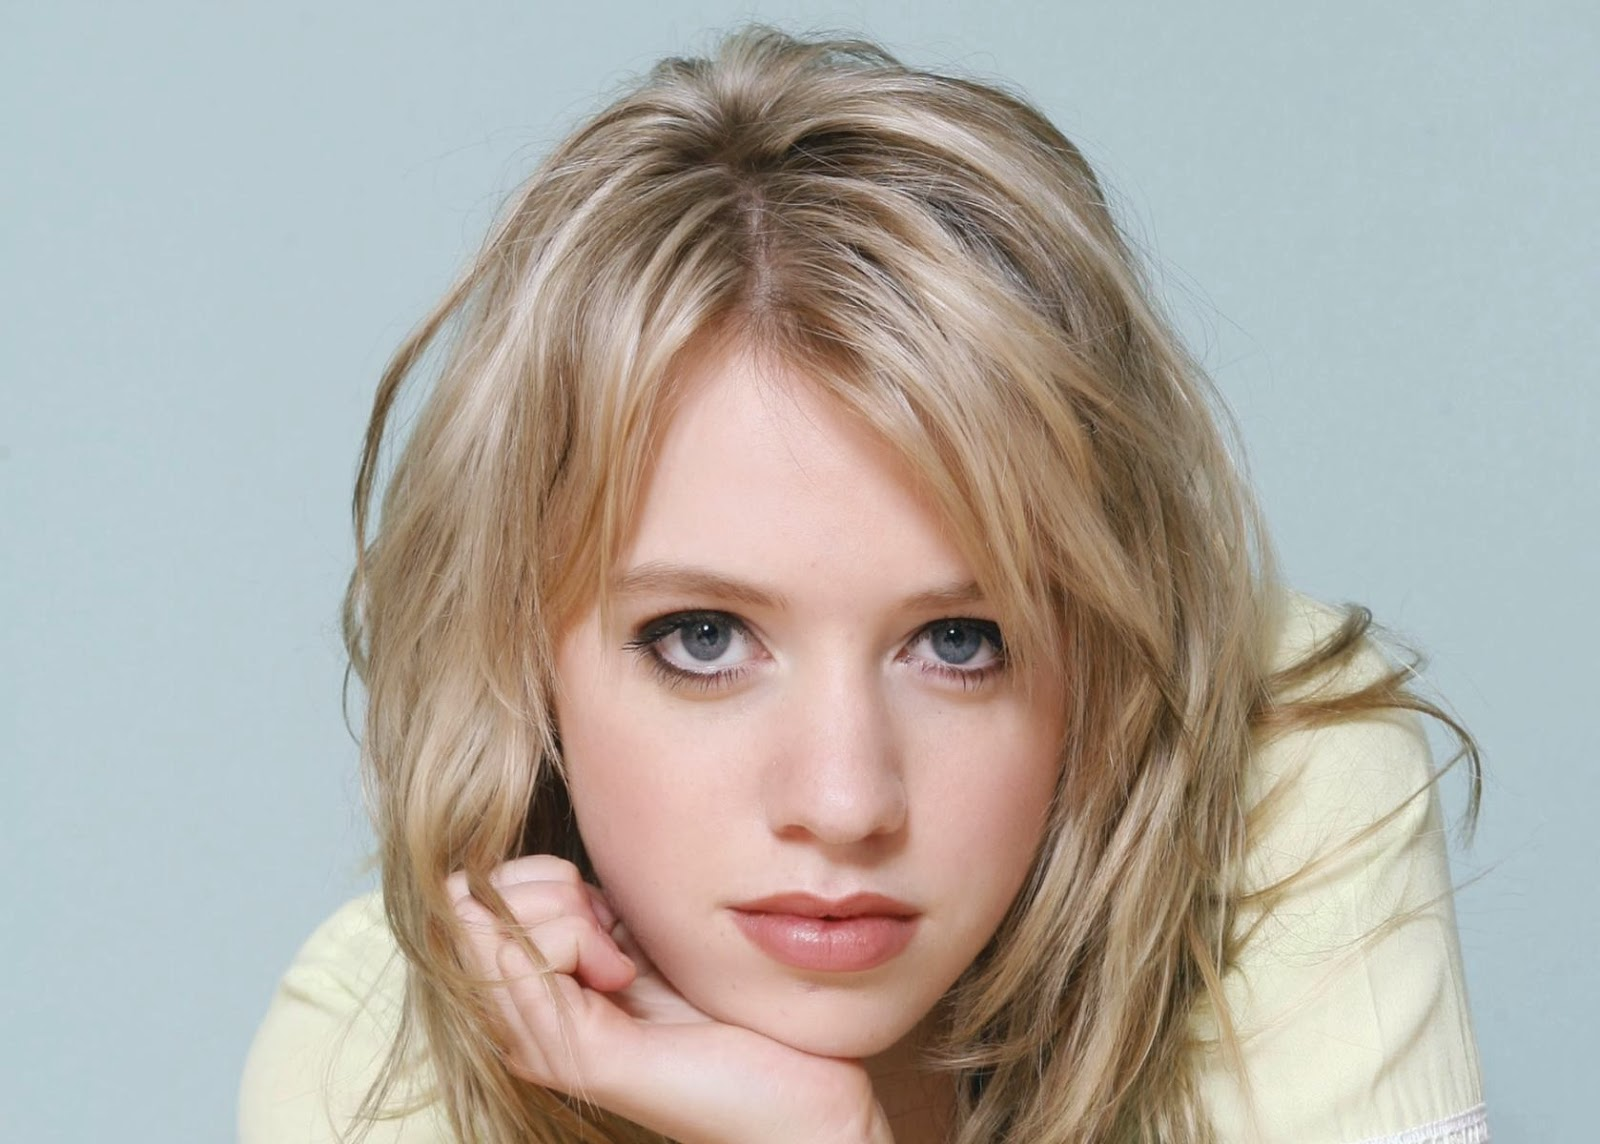 Alexz Johnson Wallpapers Free Download